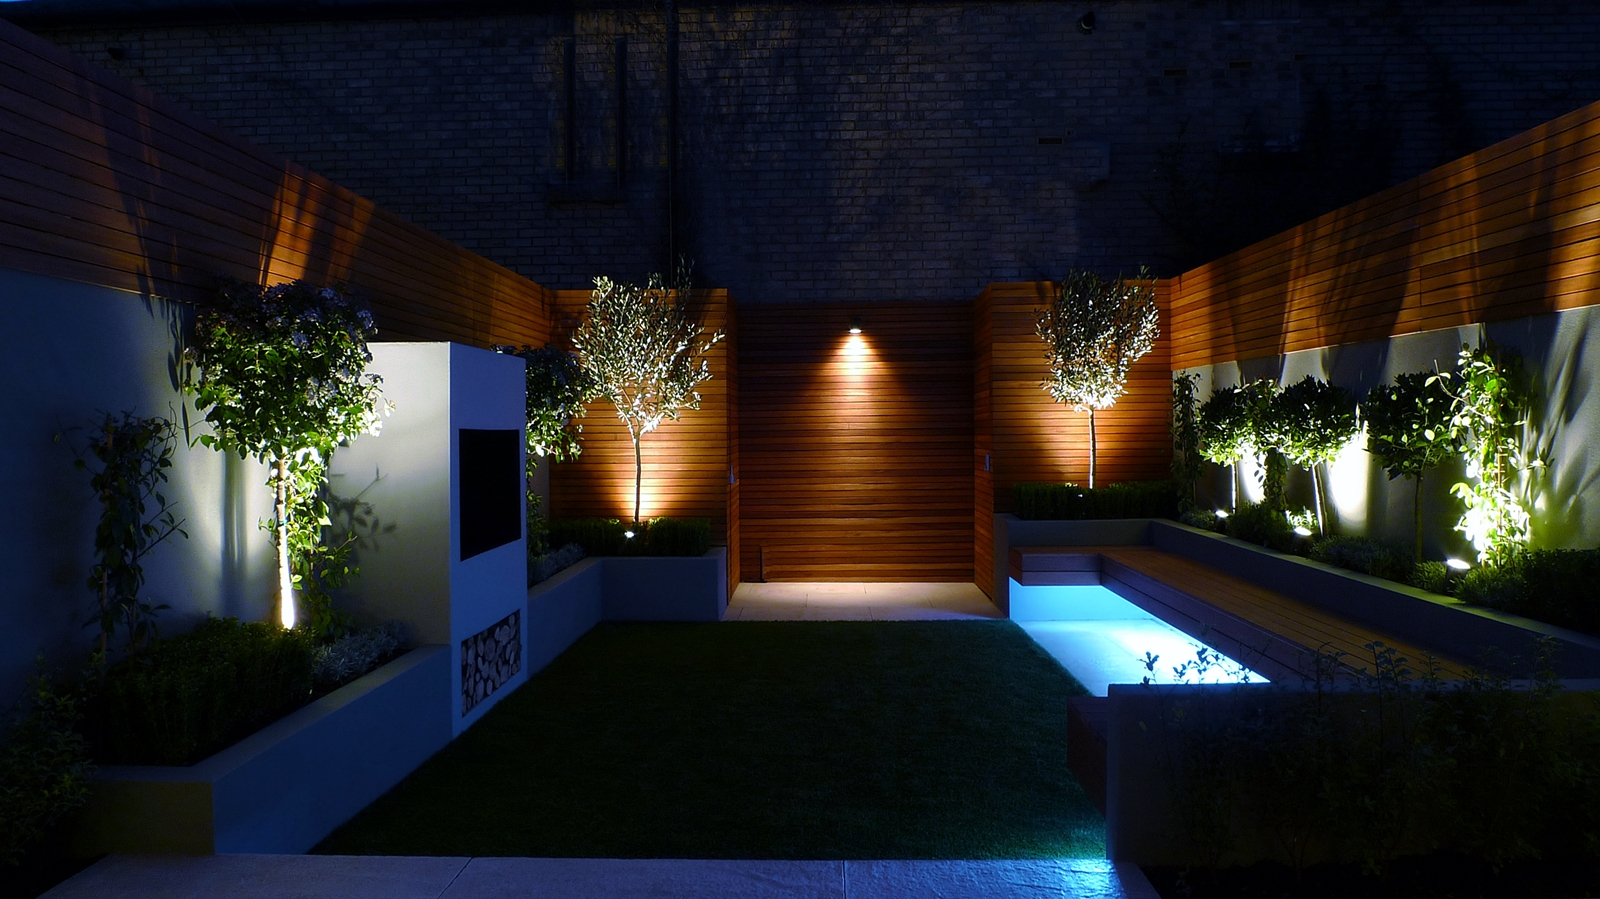 Led Lighting Effects On Health Making Sure Your Outdoor Illumination Doesn't Annoy Your